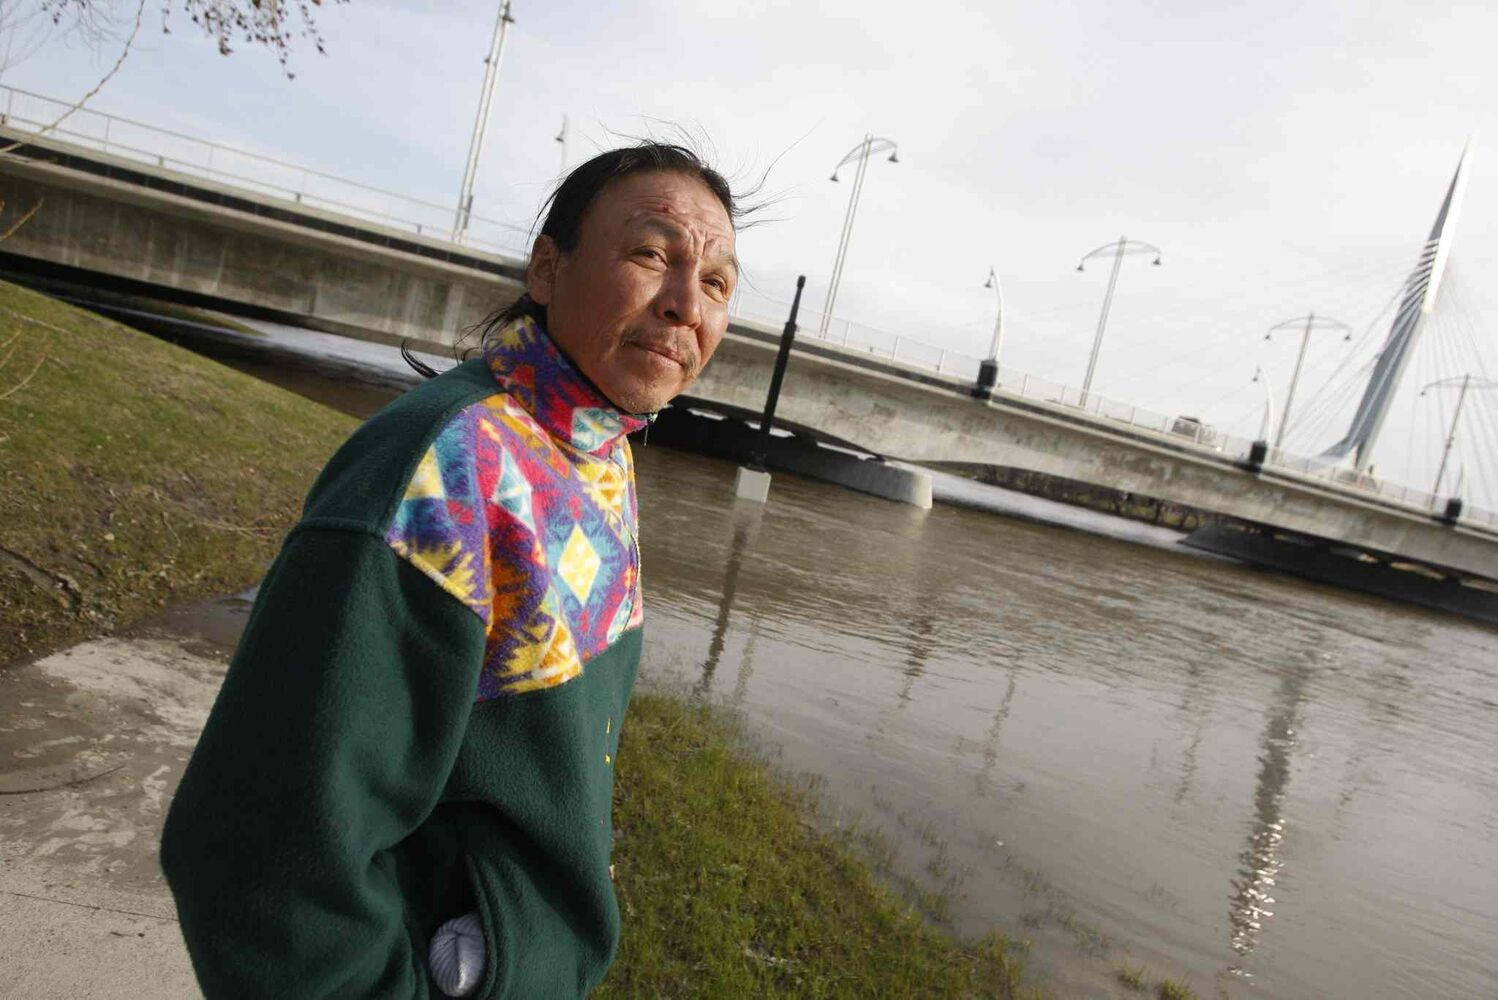 Faron Hall gained national attention after saving two people from the Red River in 2009. His body was found in the river this past weekend. (BORIS MINKEVICH / WINNIPEG FREE PRESS Files)